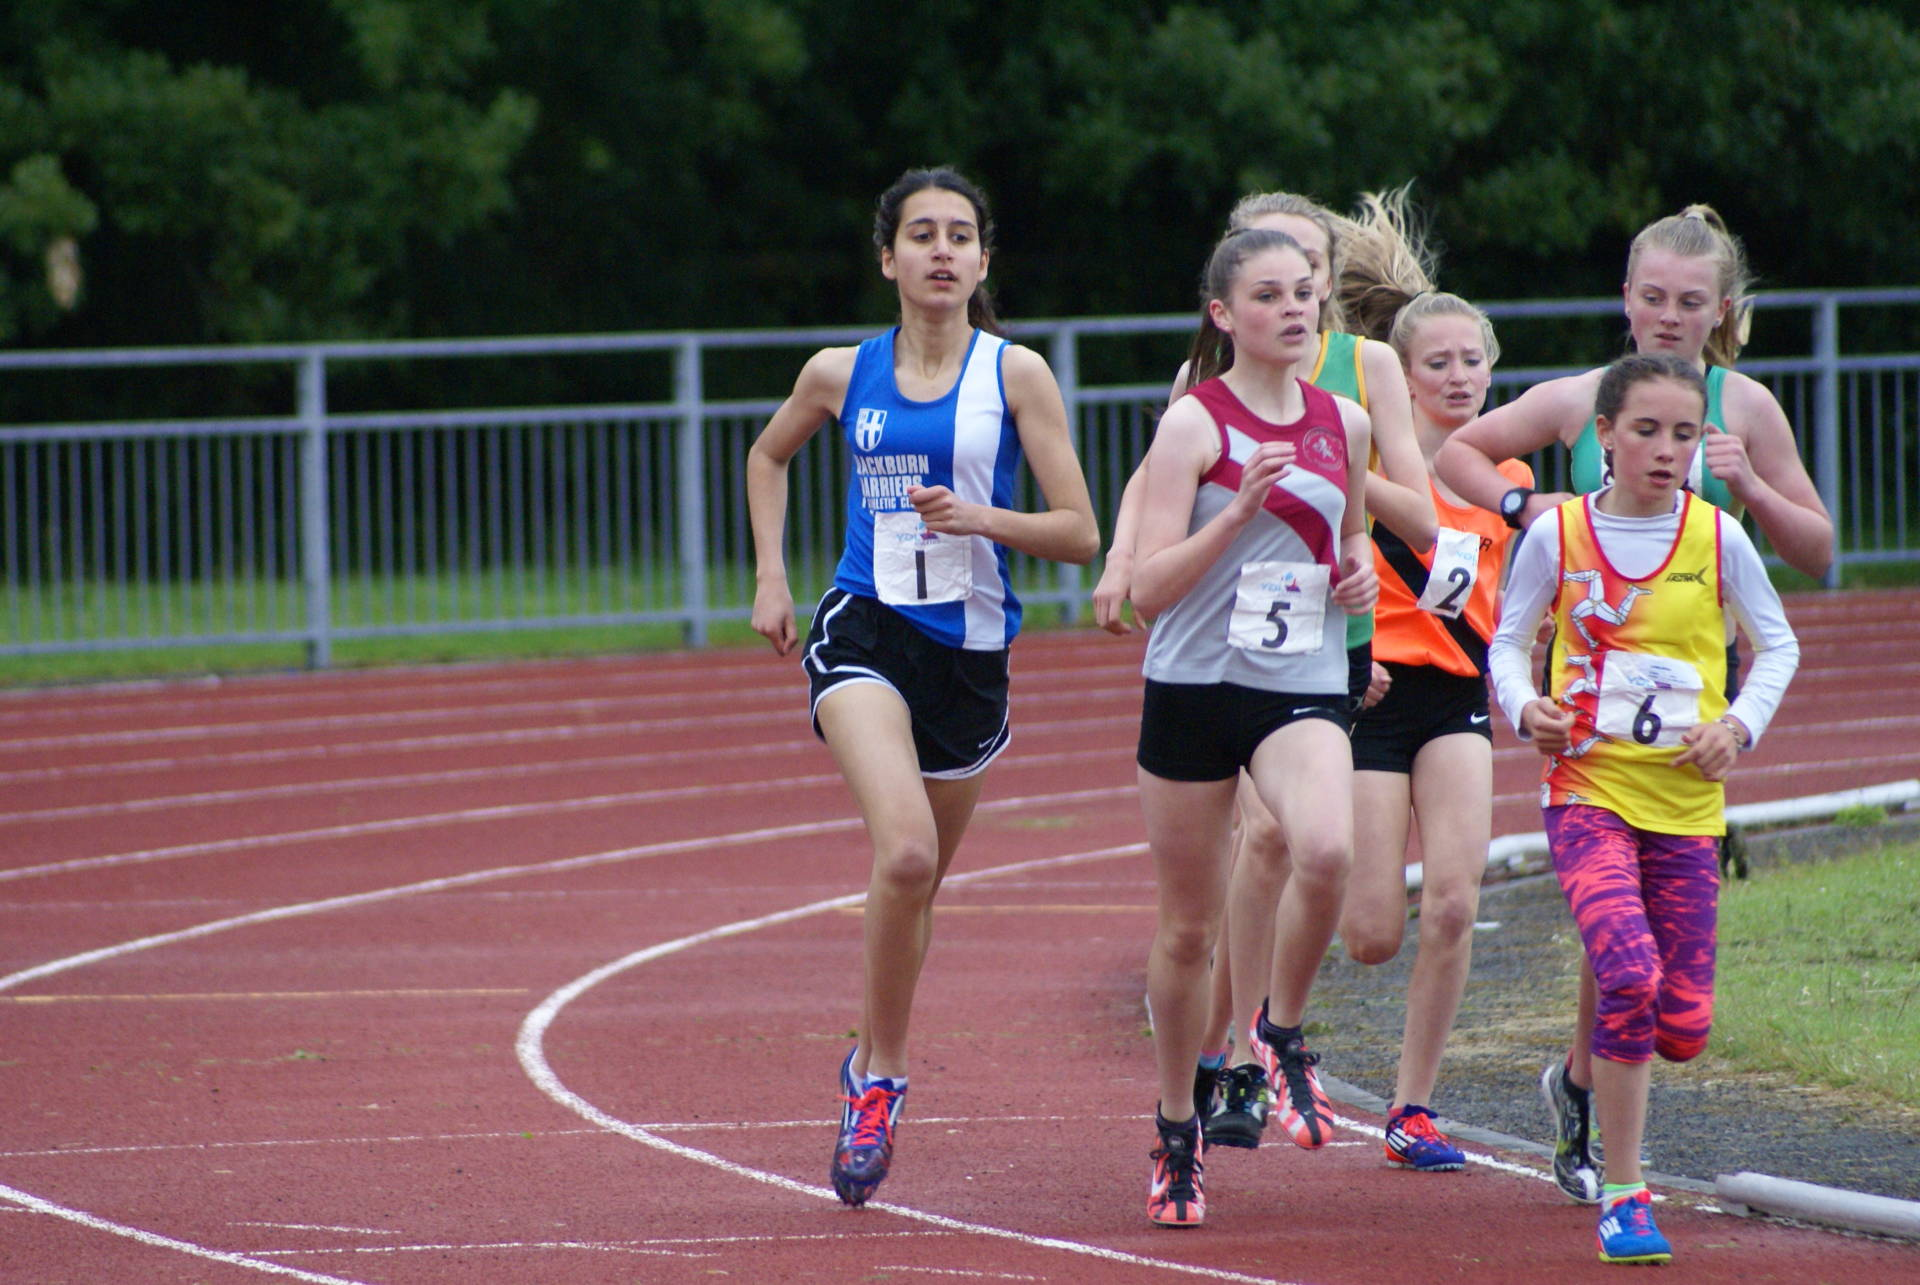 Harriers consolidate promotion place in YDL Lower Age Group with 18 wins and 26 PB's